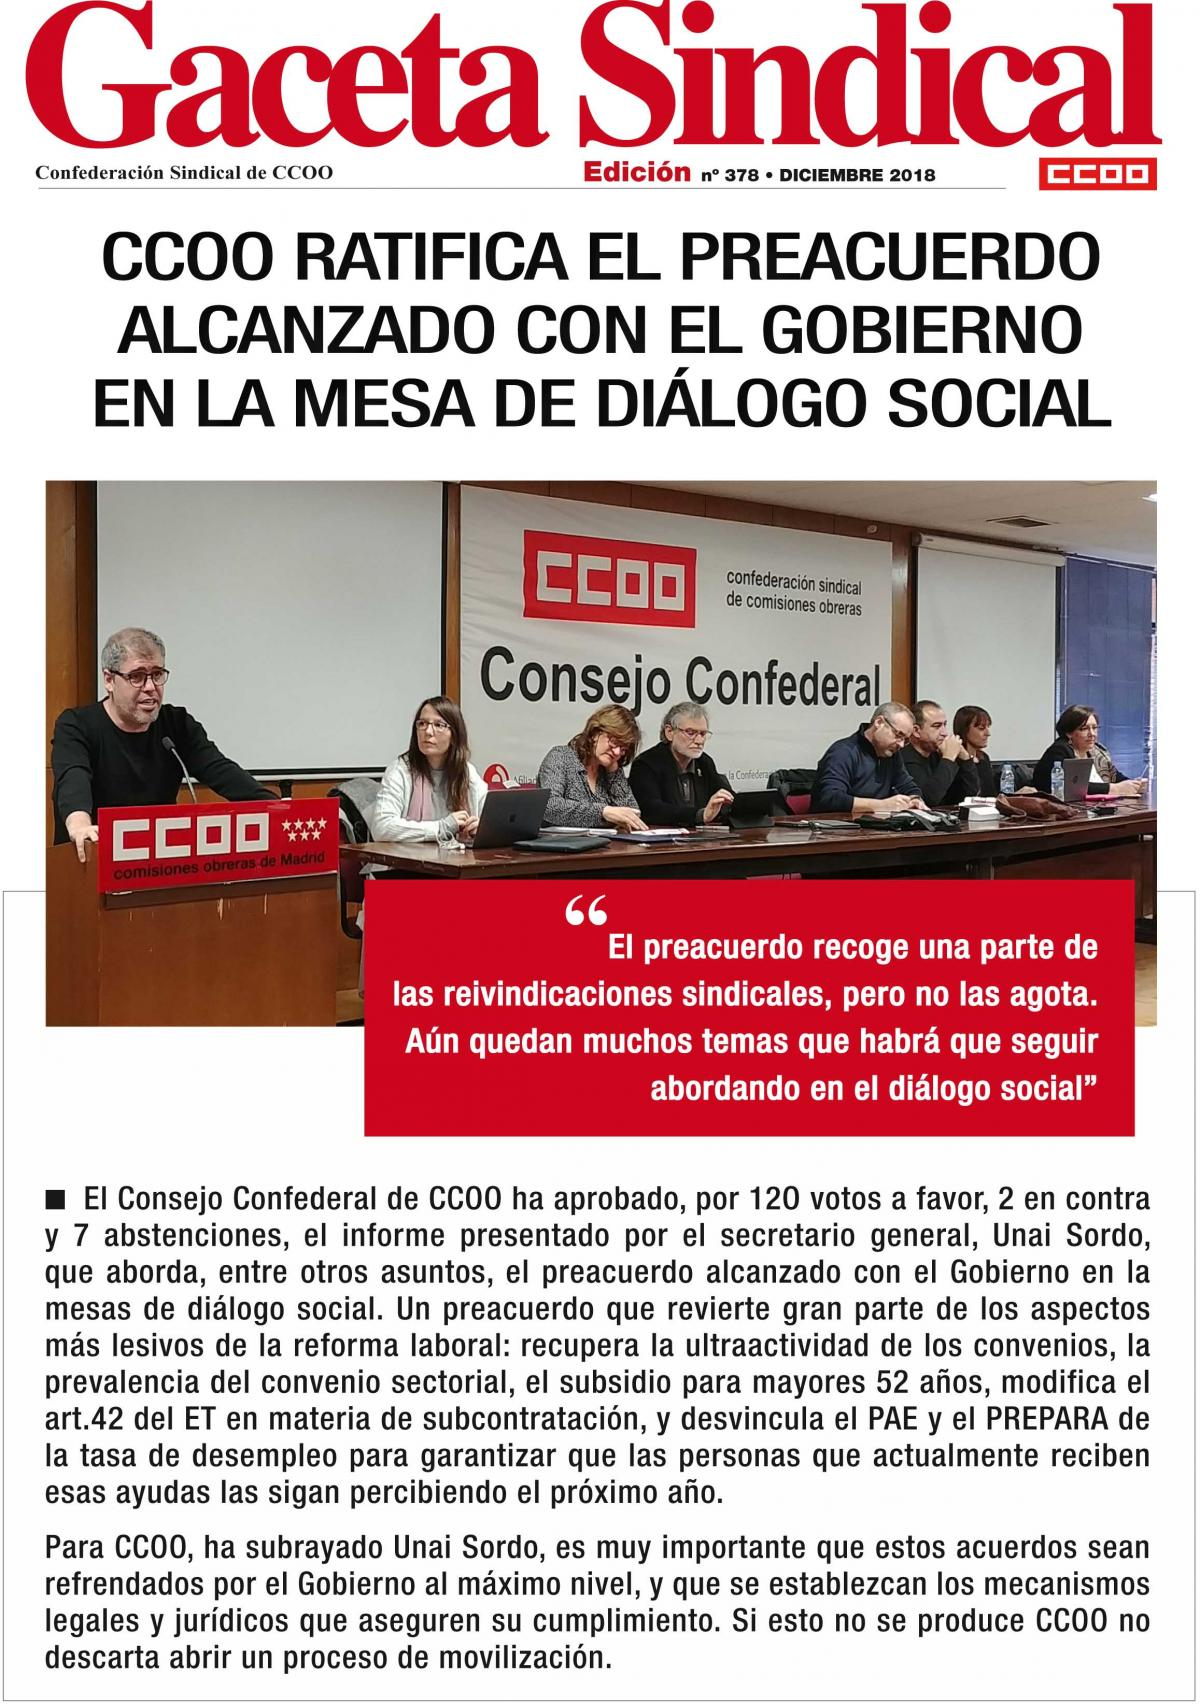 Gaceta Sindical 378